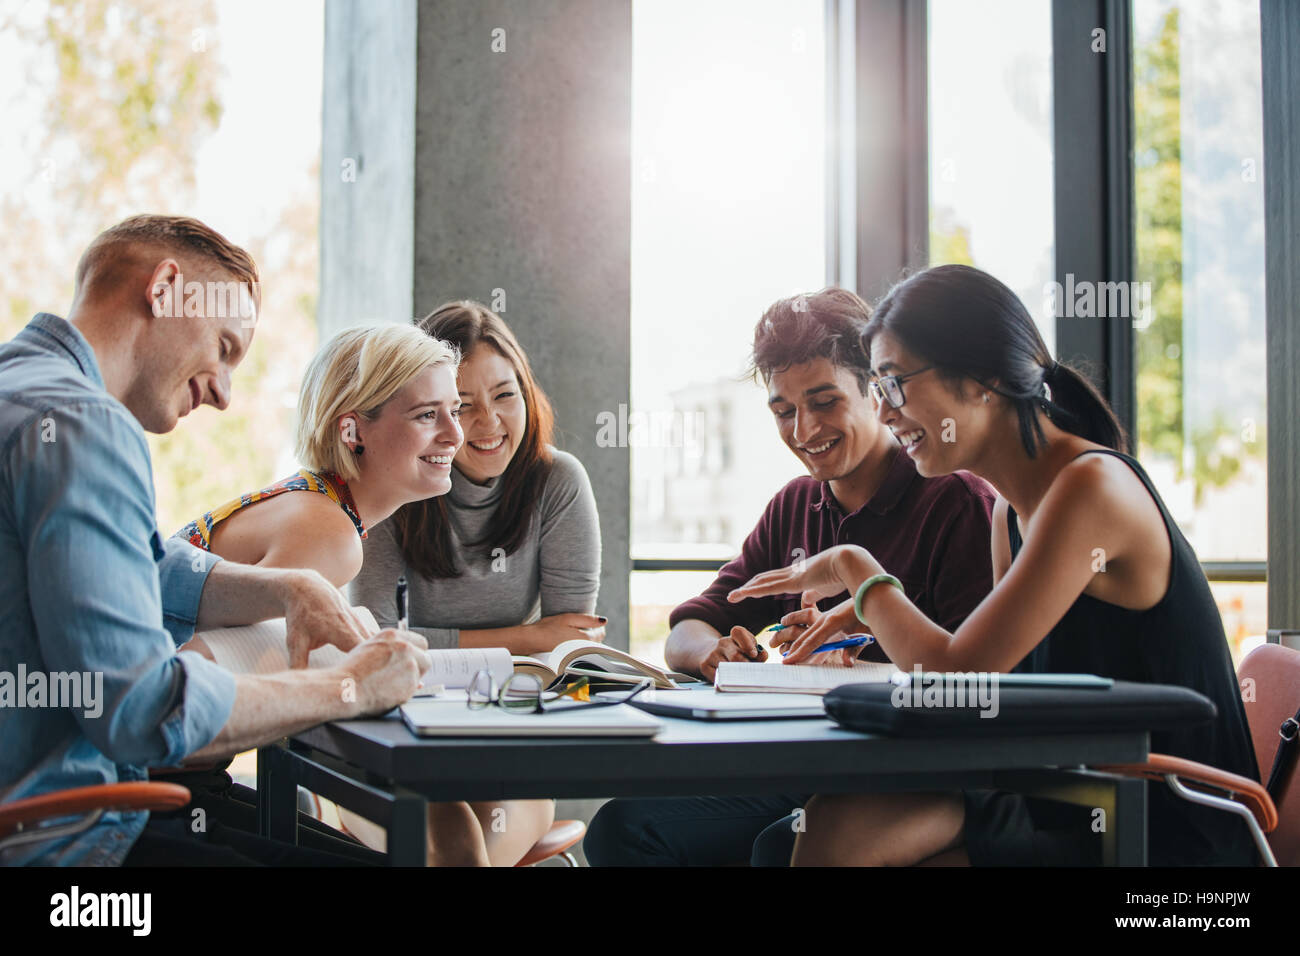 Happy young university students studying with books in library. Group of multiracial people in college library. - Stock Image